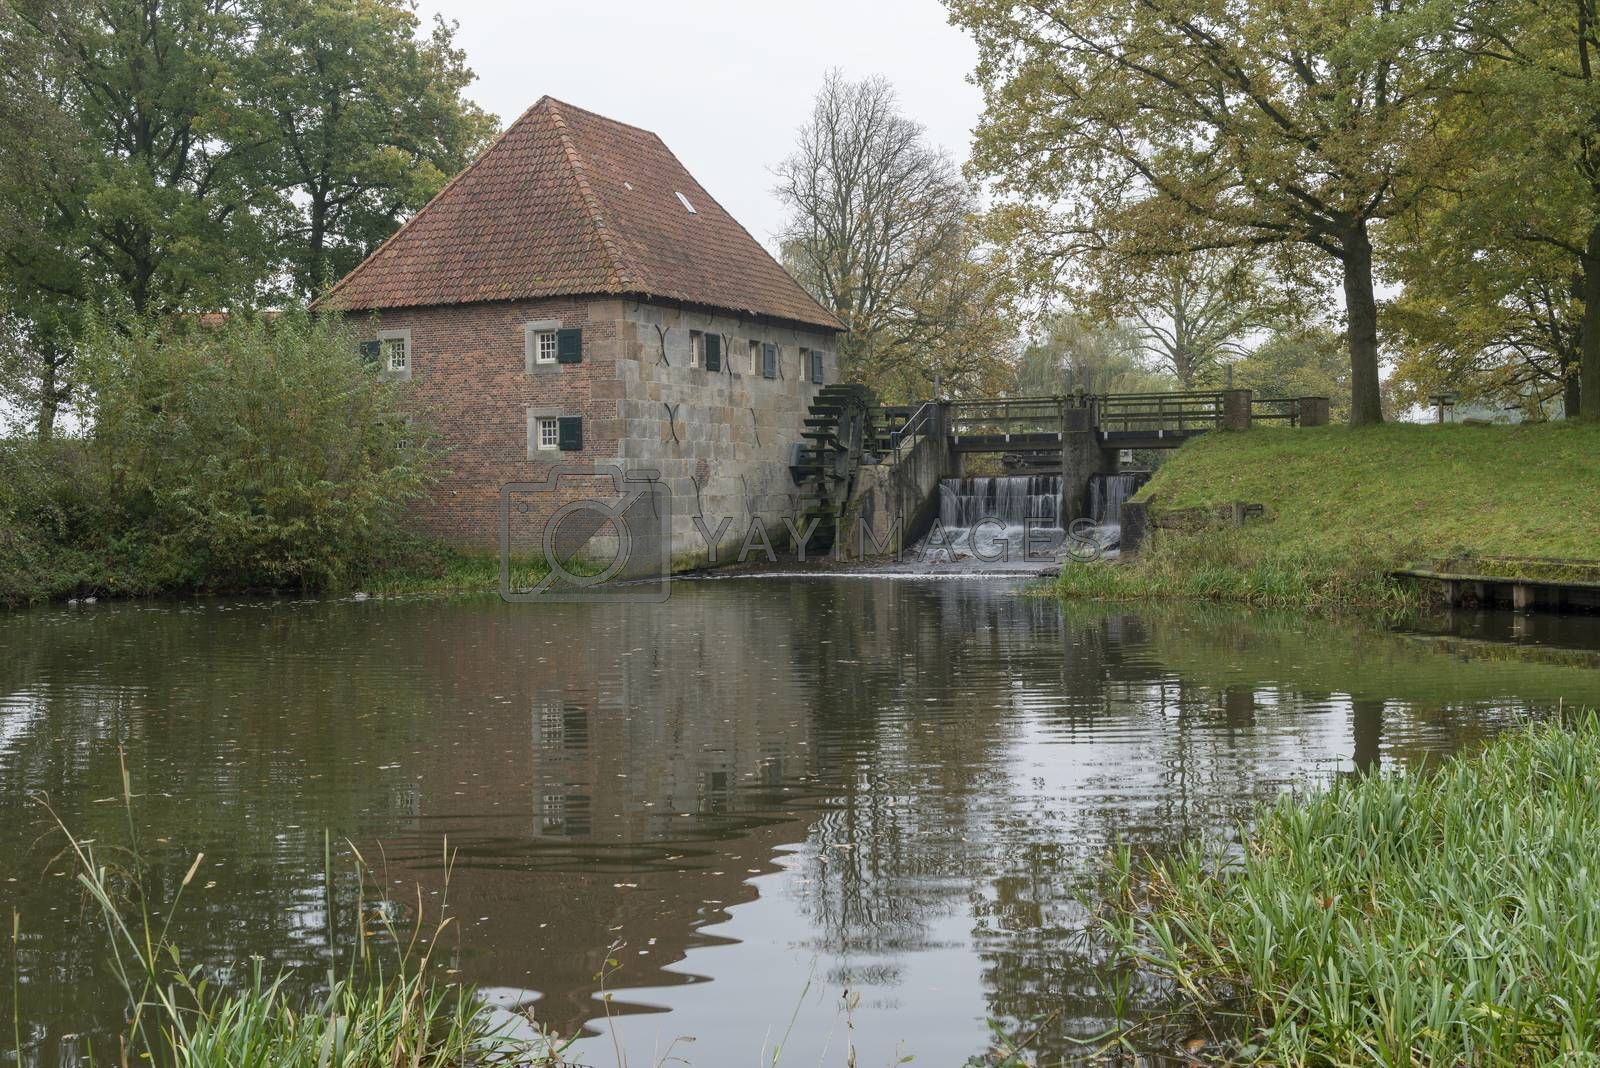 The authentic and monumental Mallumse water mill in Eibergen in the region Achterhoek in the Netherlands